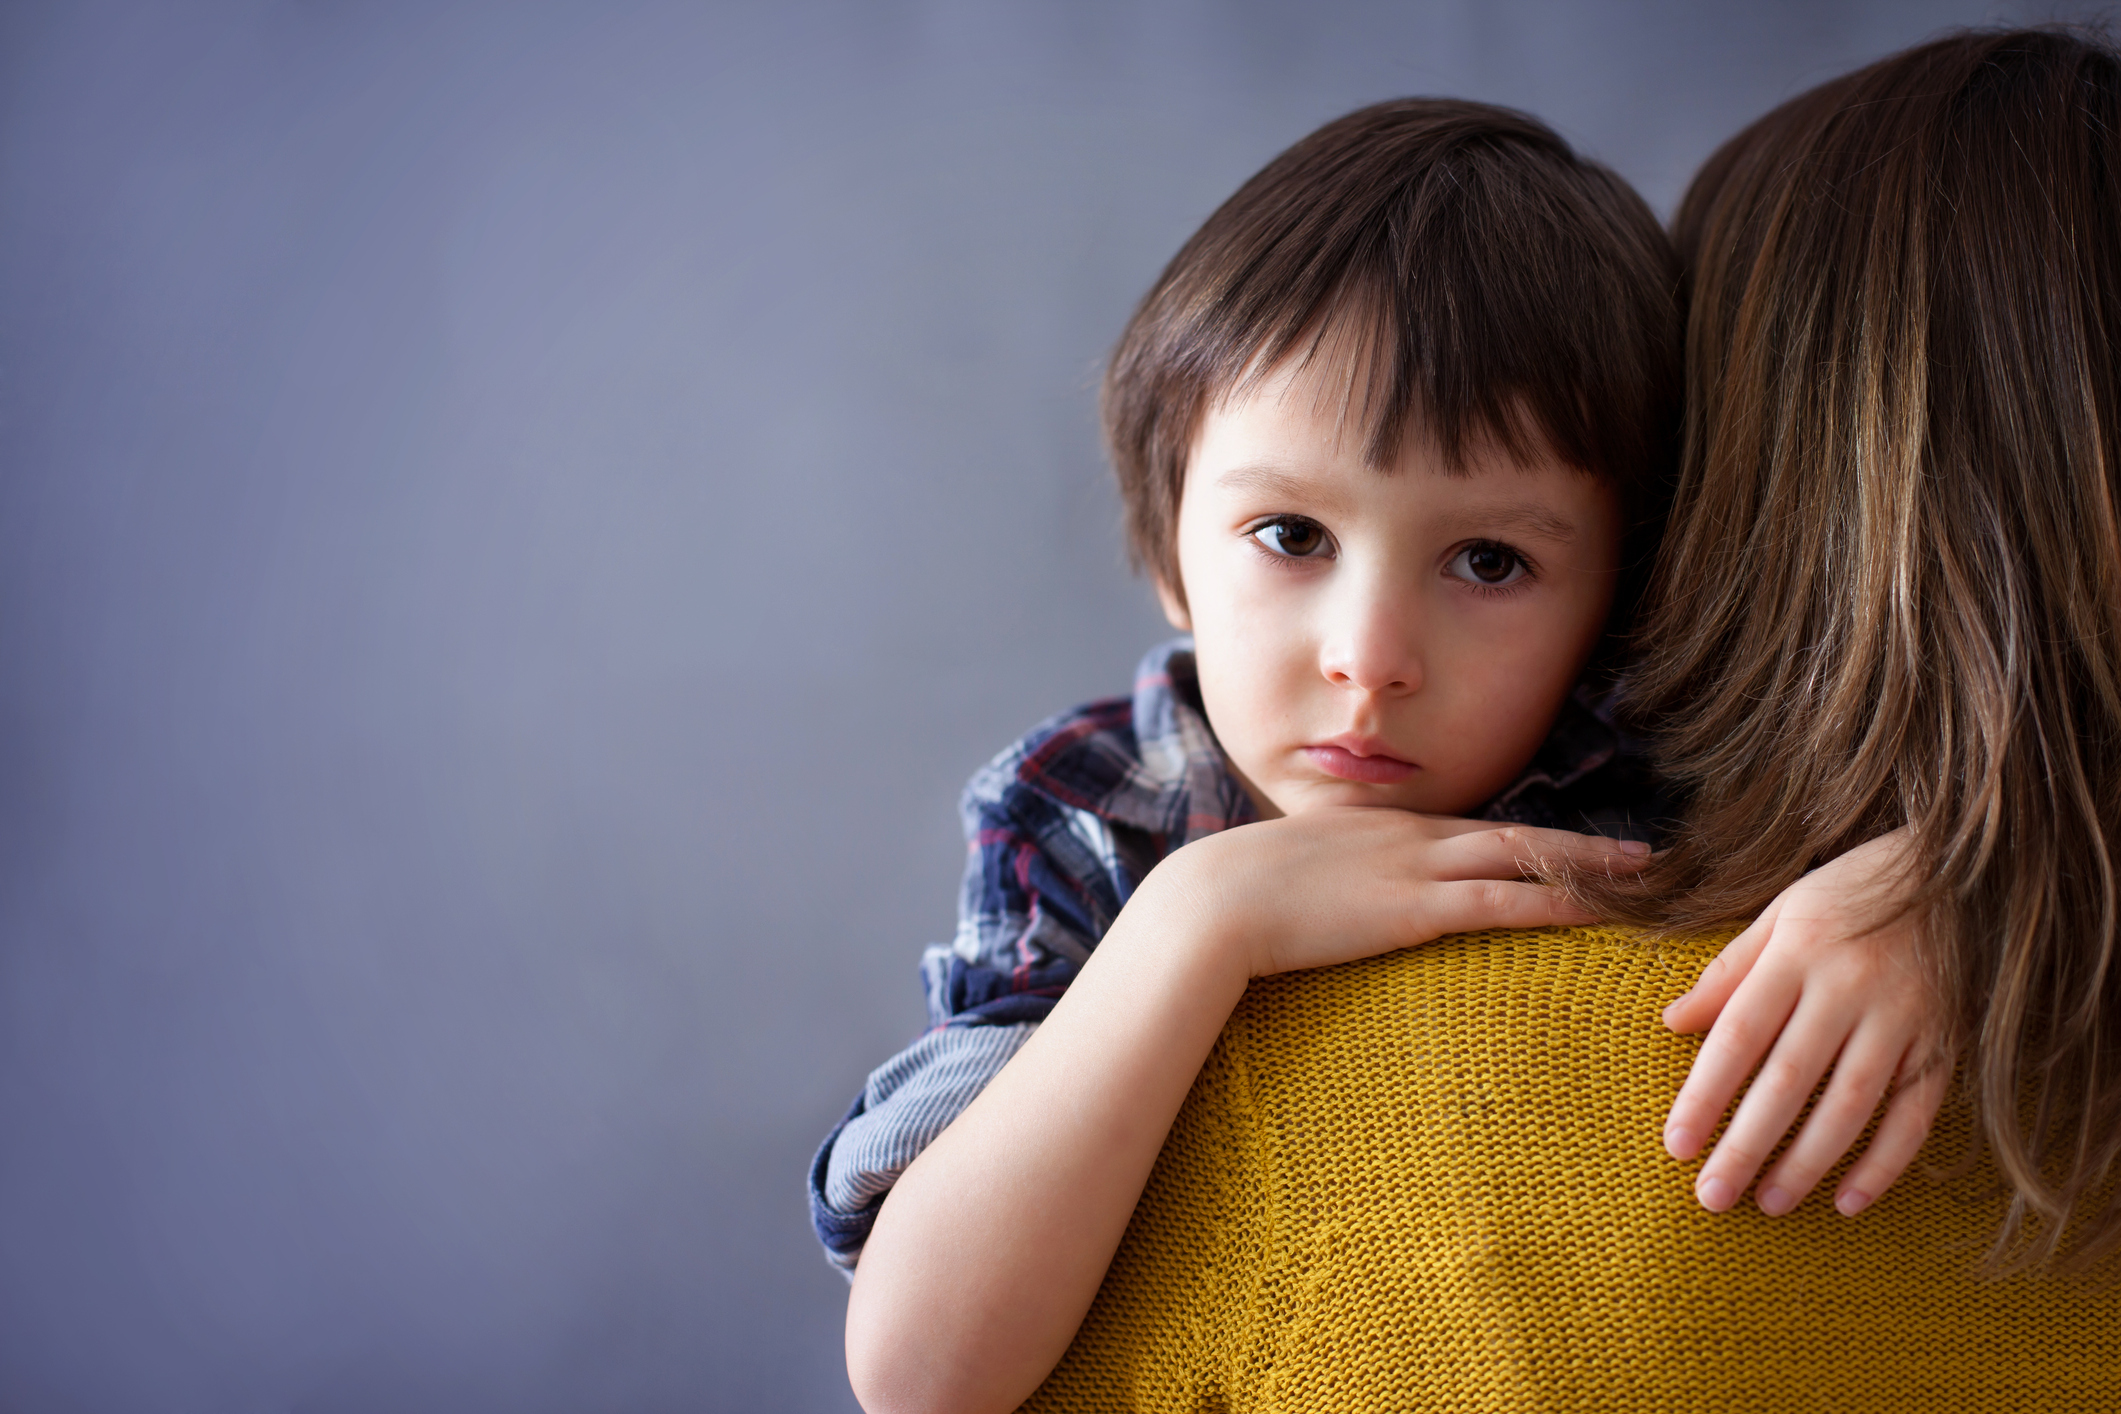 1 in every 10 children suffer from mental illness -